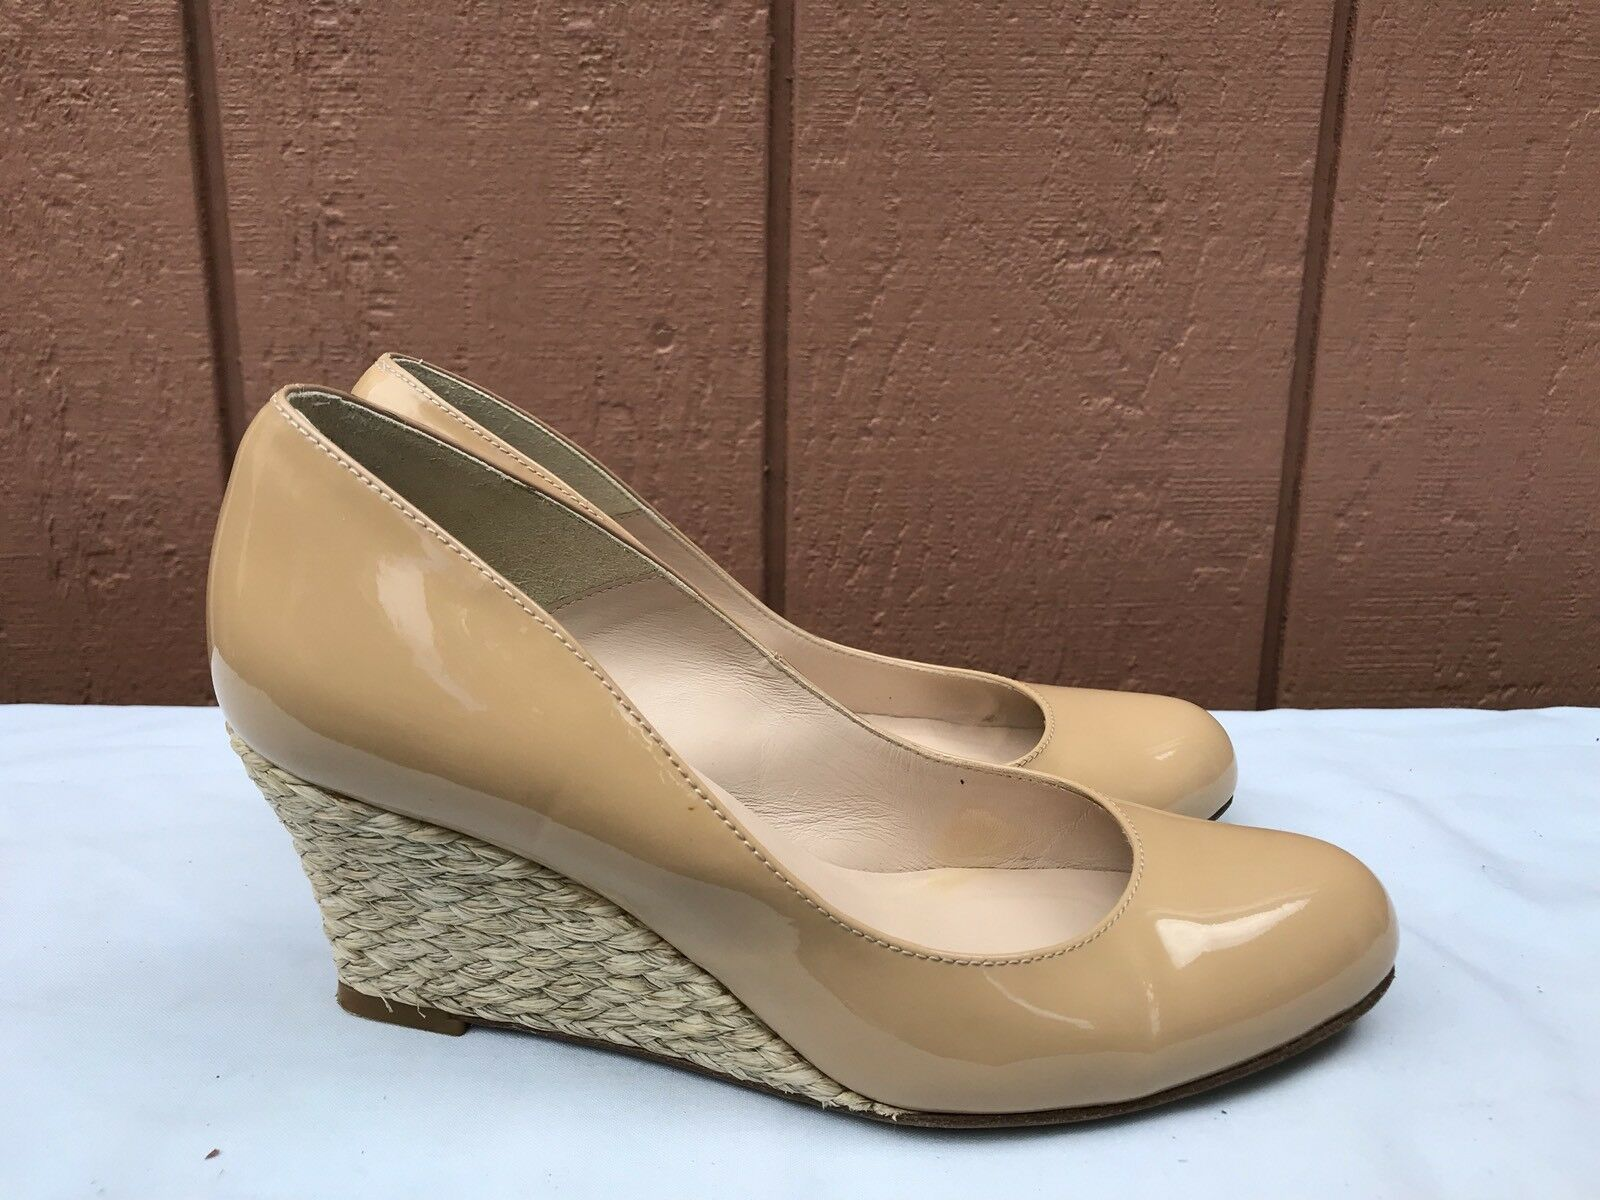 EUC LK Bennett 35 US 4.5 Nude Beige Patent Leather Espadrille Wedge A7